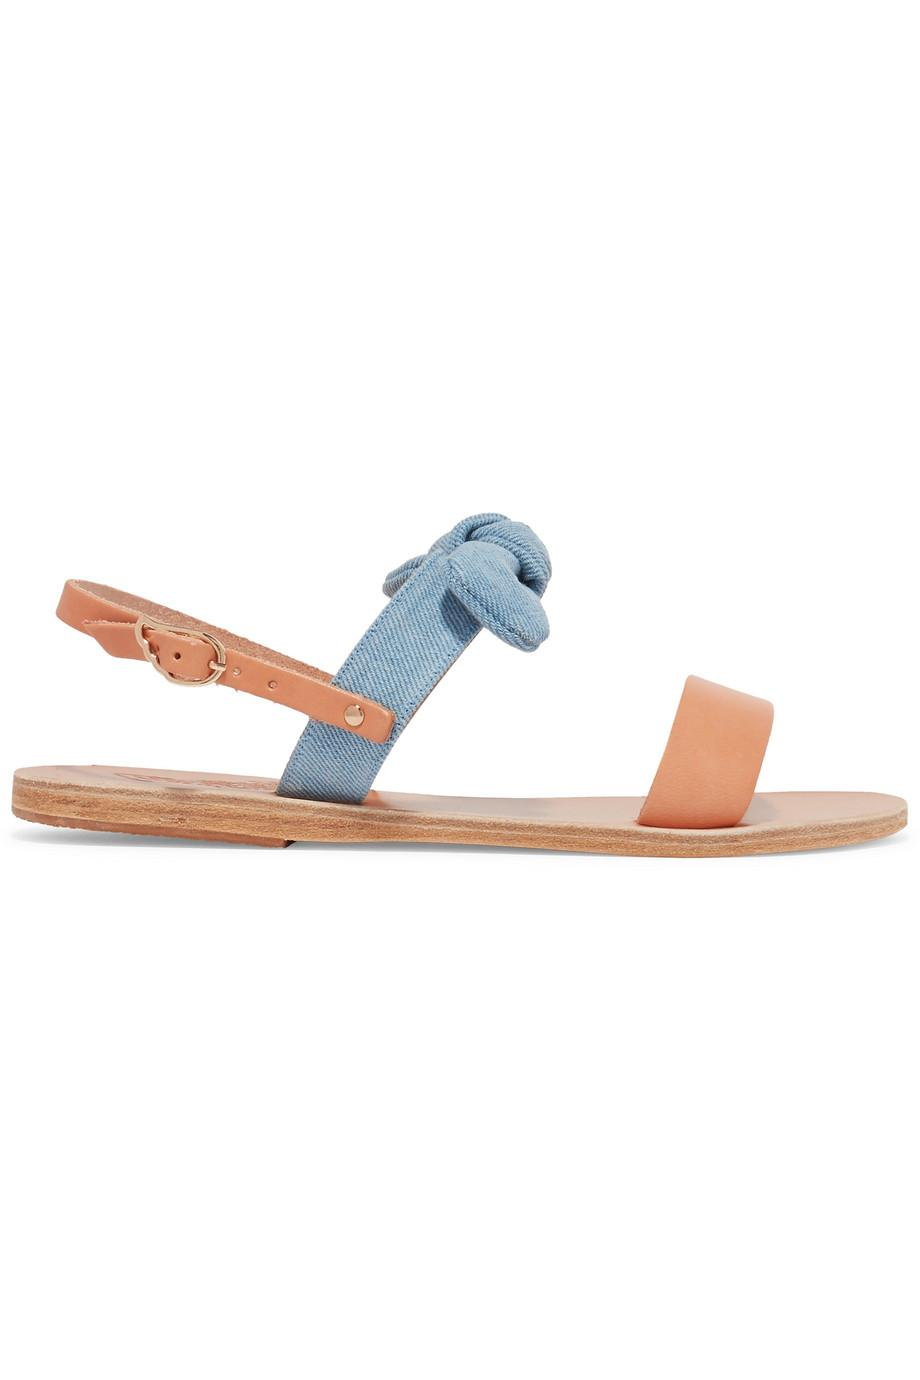 Clio Bow-embellished Denim And Leather Sandals - Tan Ancient Greek Sandals Yoh7gVwqzF